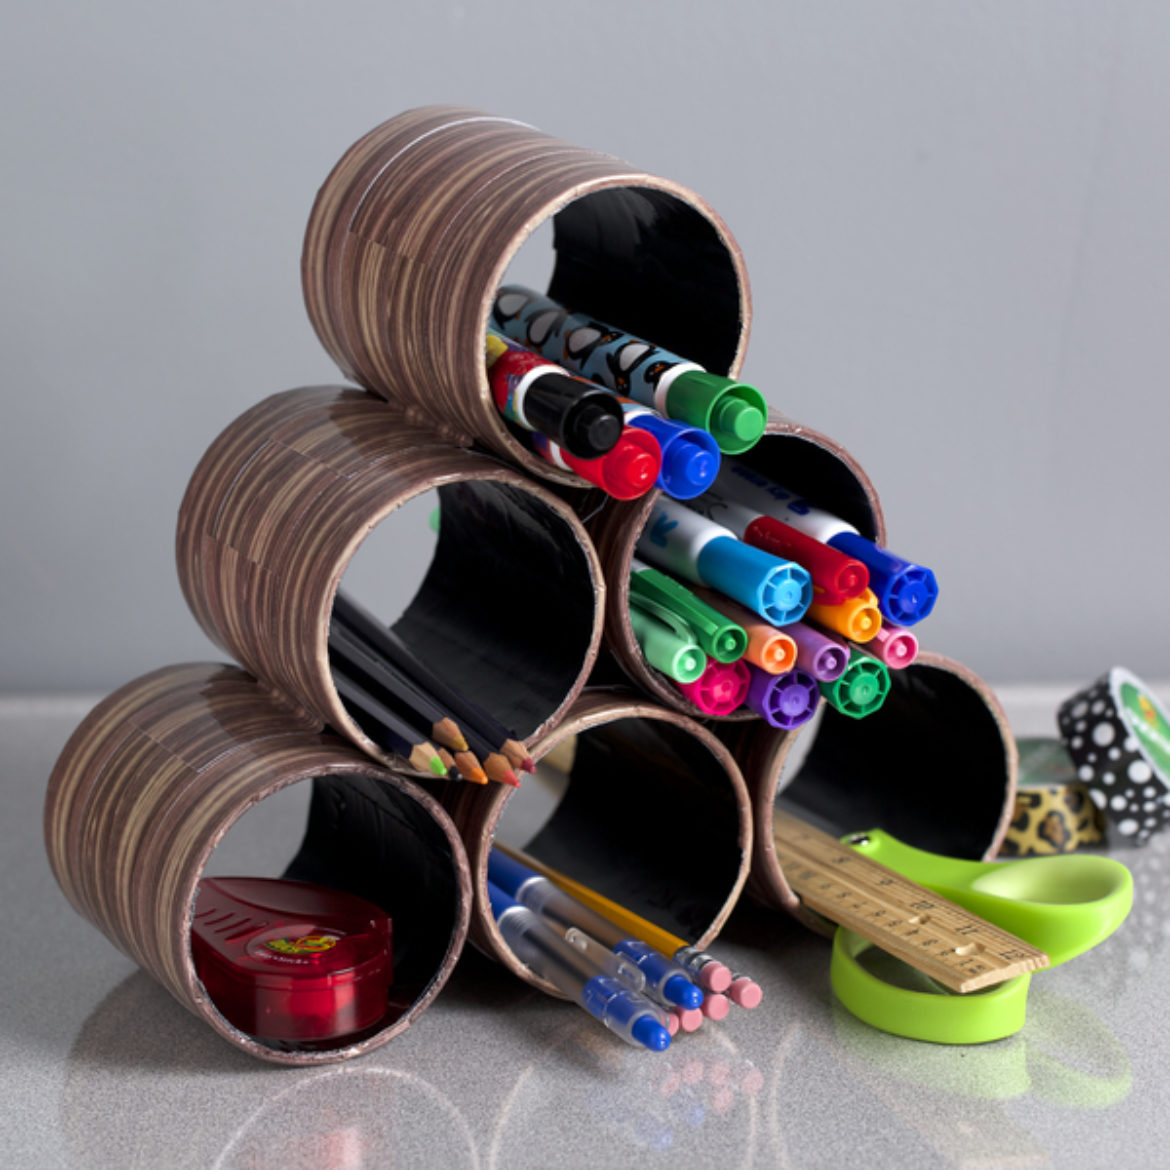 Completed Duck Tape® Desk Organizer full of pens